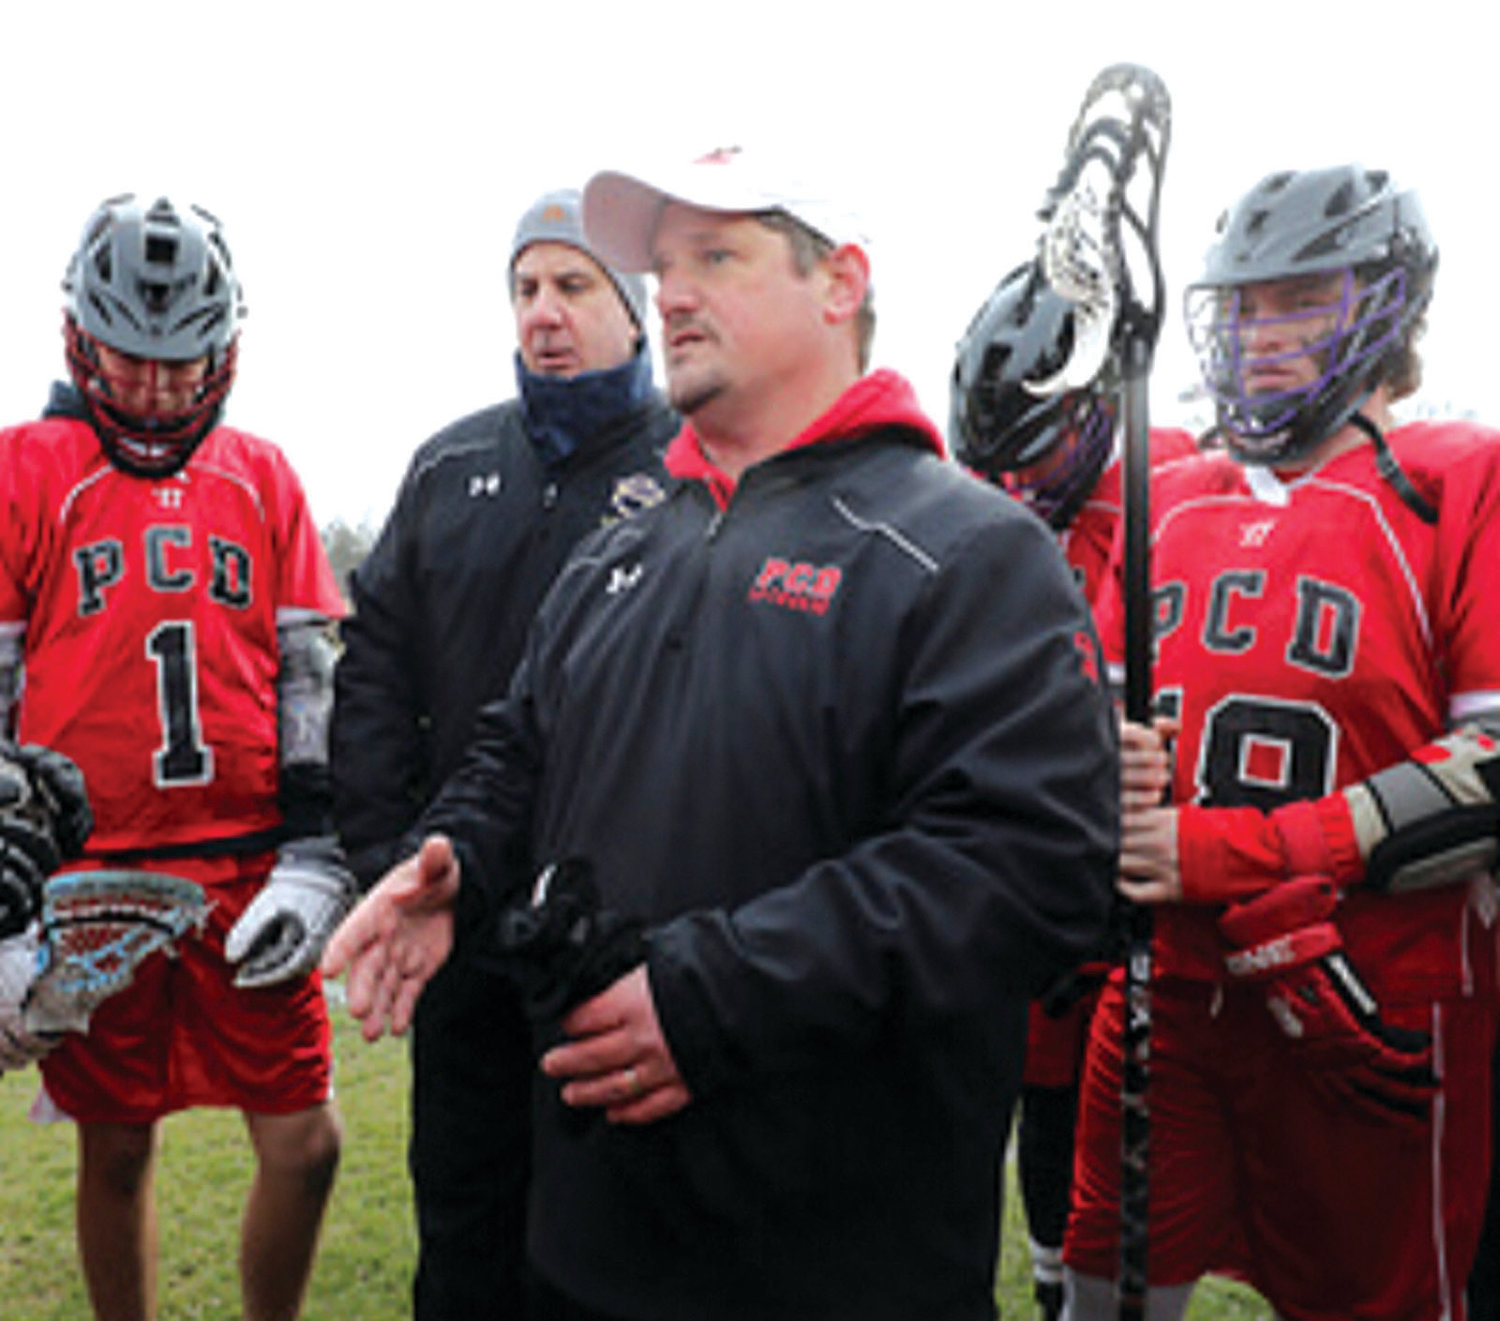 NEW LEADER: Pete Kelleher coaching the Providence Country Day boys lacrosse team.